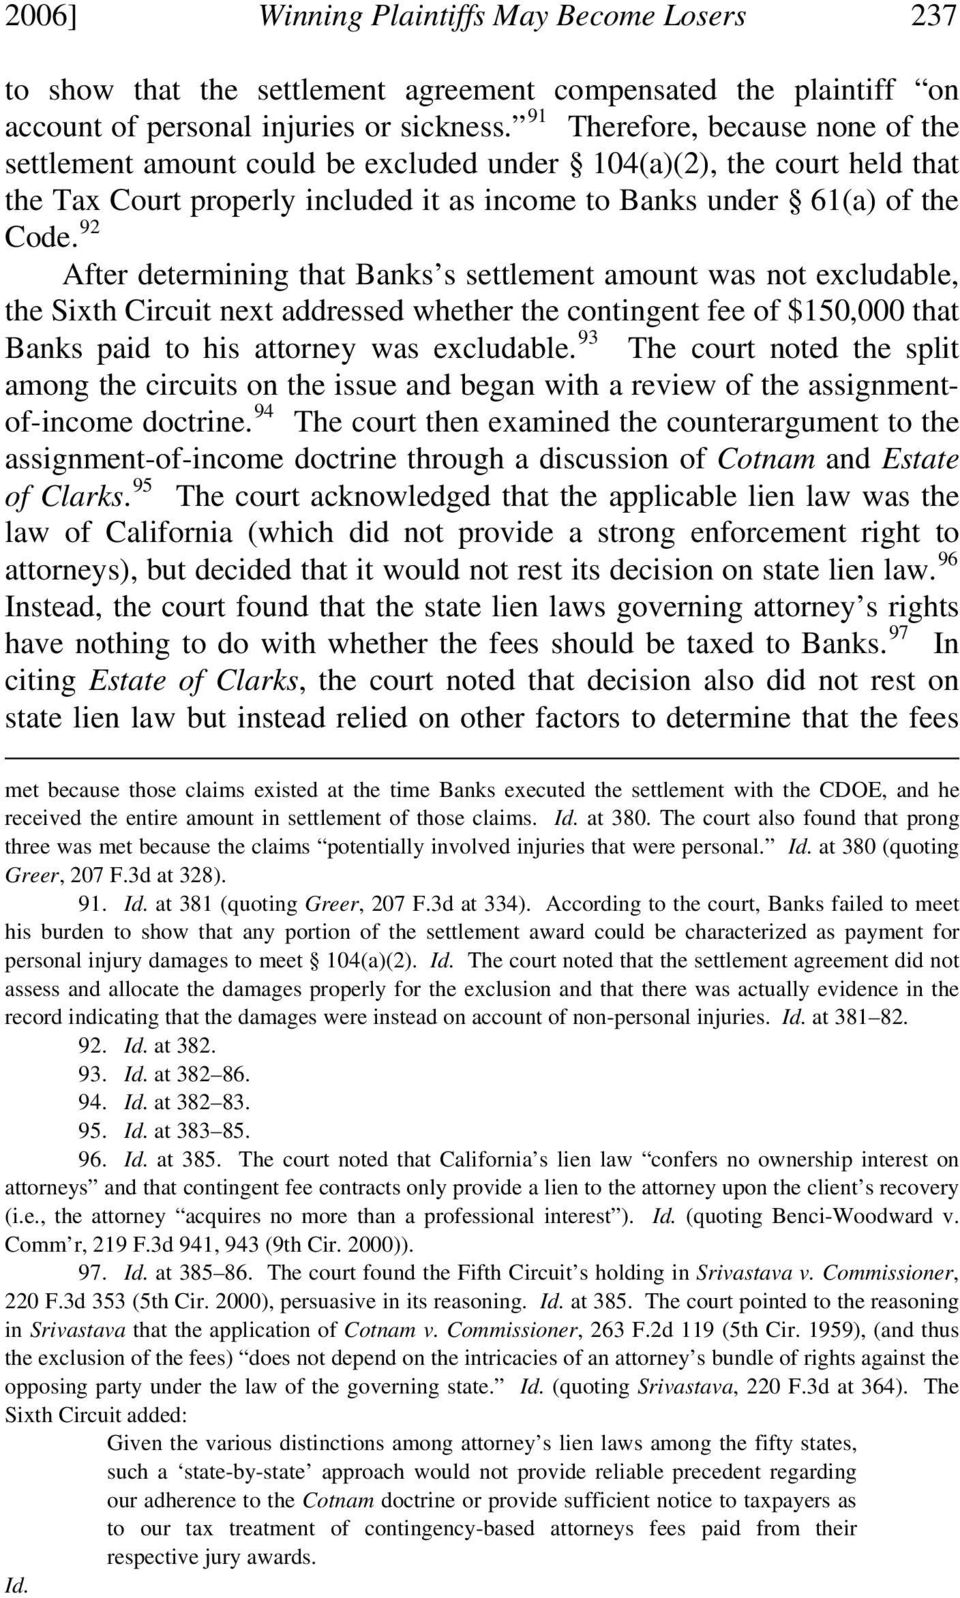 92 After determining that Banks s settlement amount was not excludable, the Sixth Circuit next addressed whether the contingent fee of $150,000 that Banks paid to his attorney was excludable.